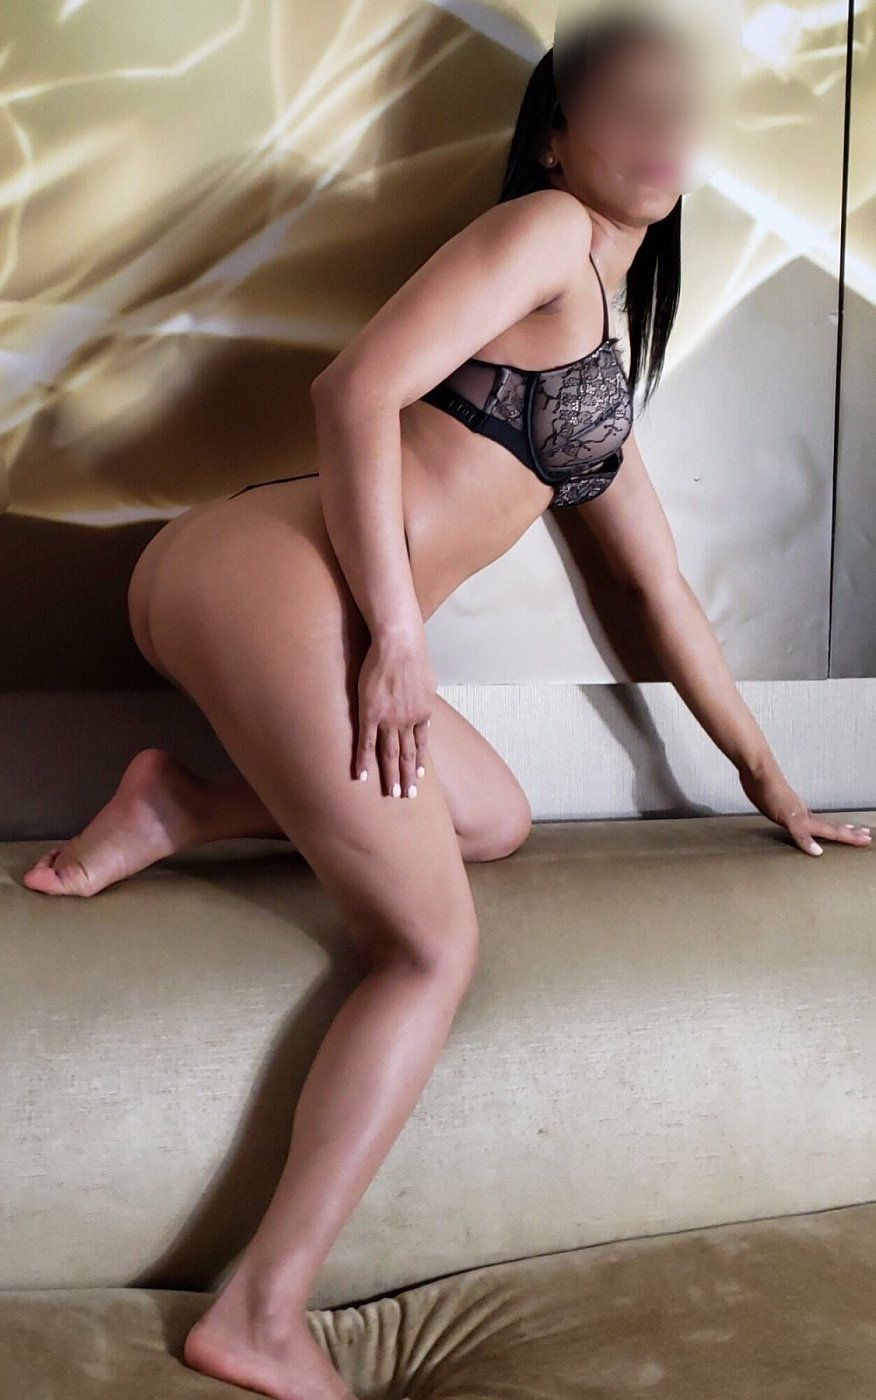 escort in Bellmawr, erotic massage